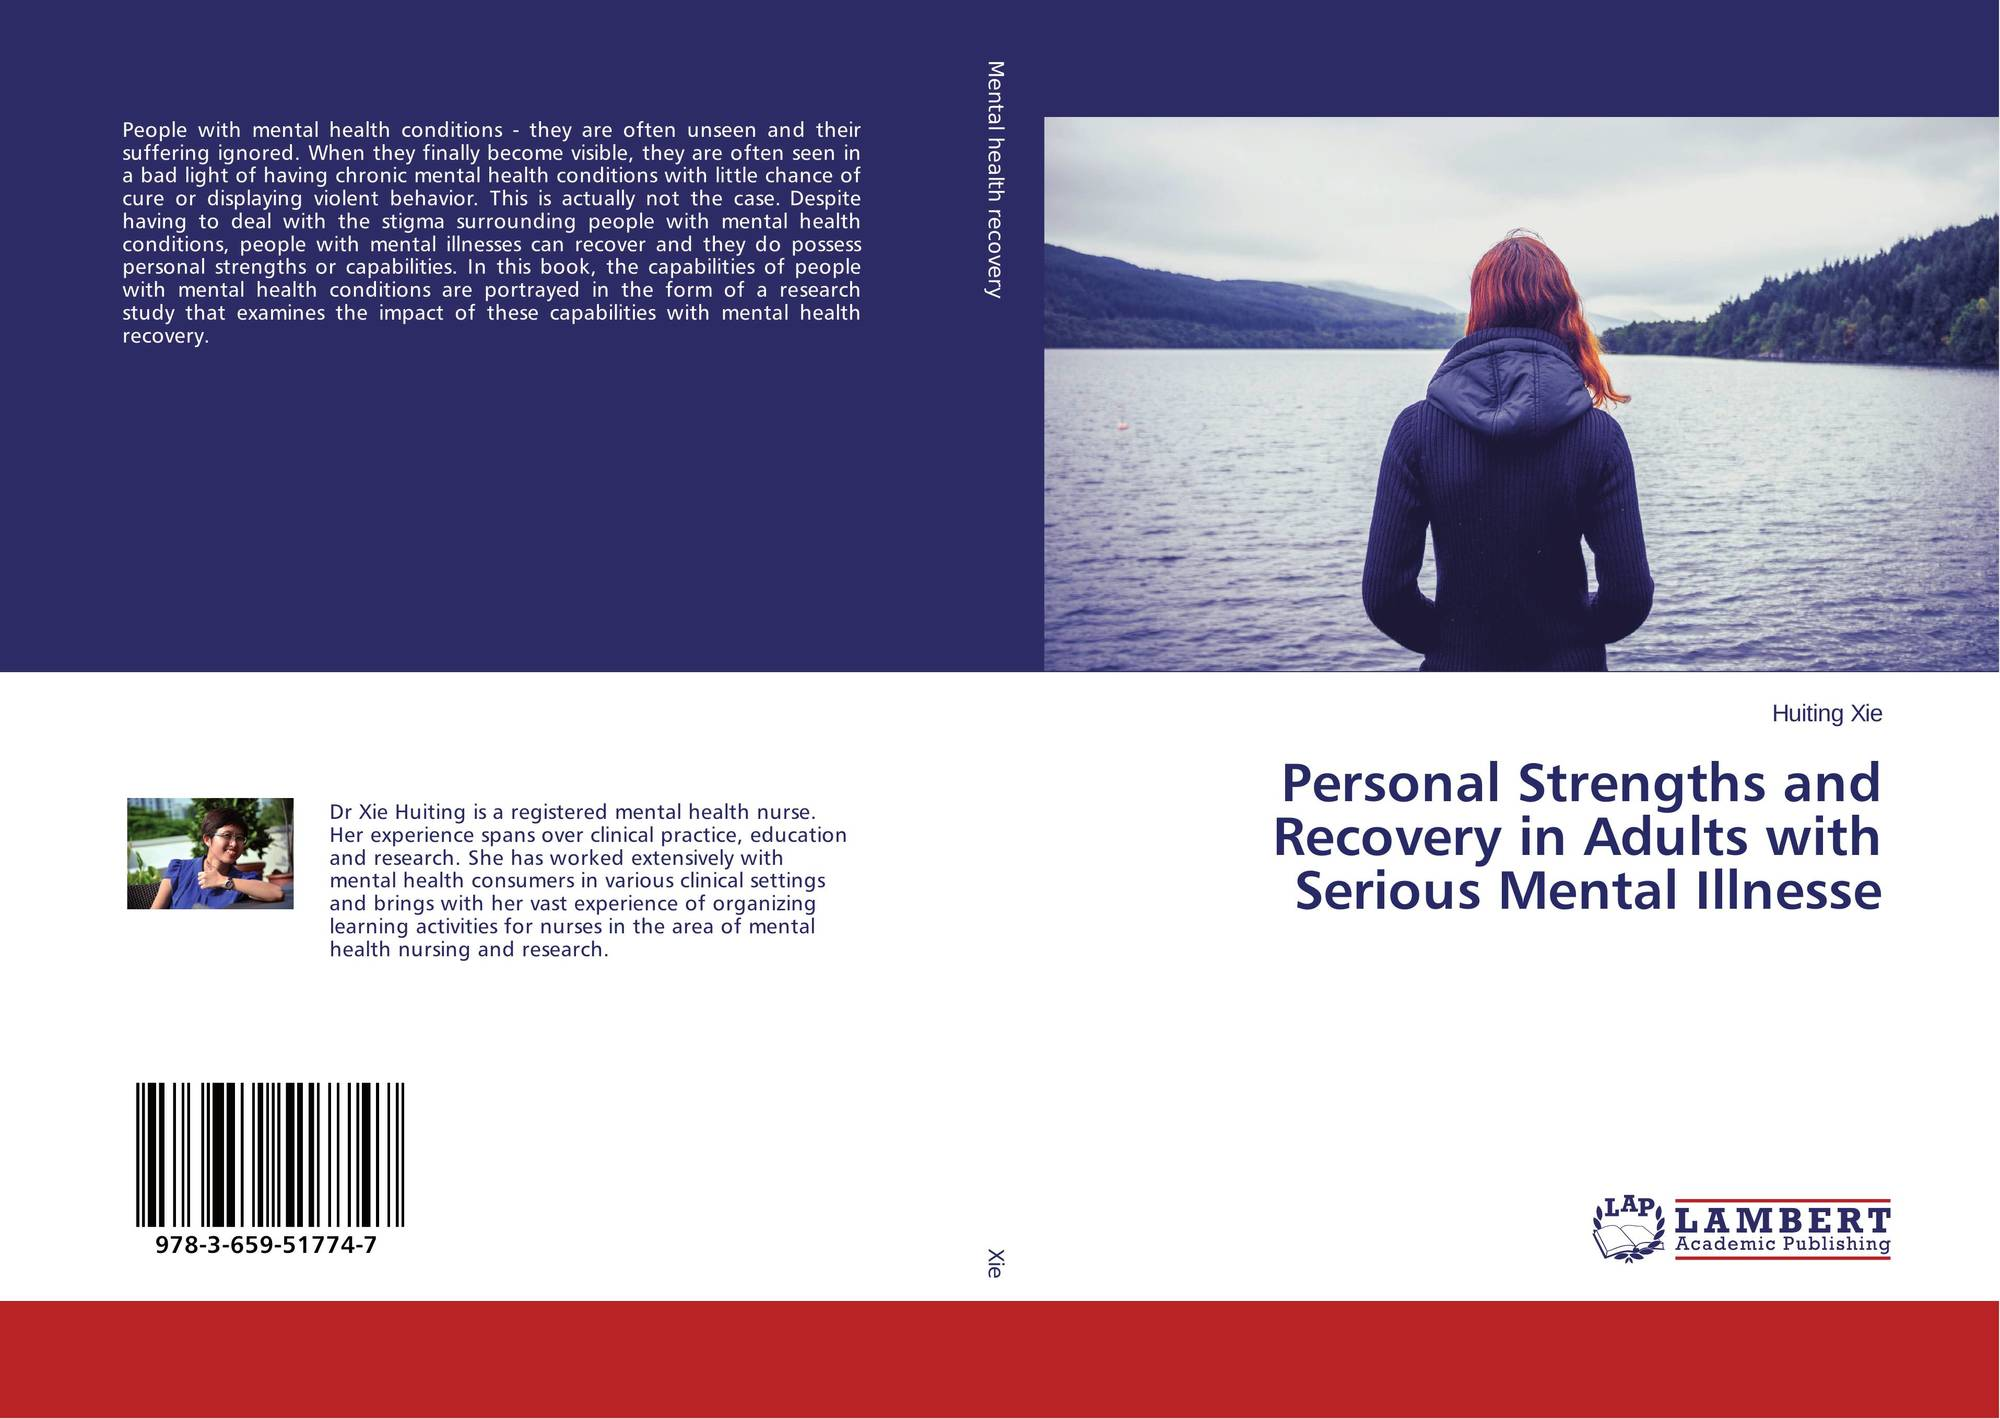 personal strengths and recovery in adults serious mental 9783659517747